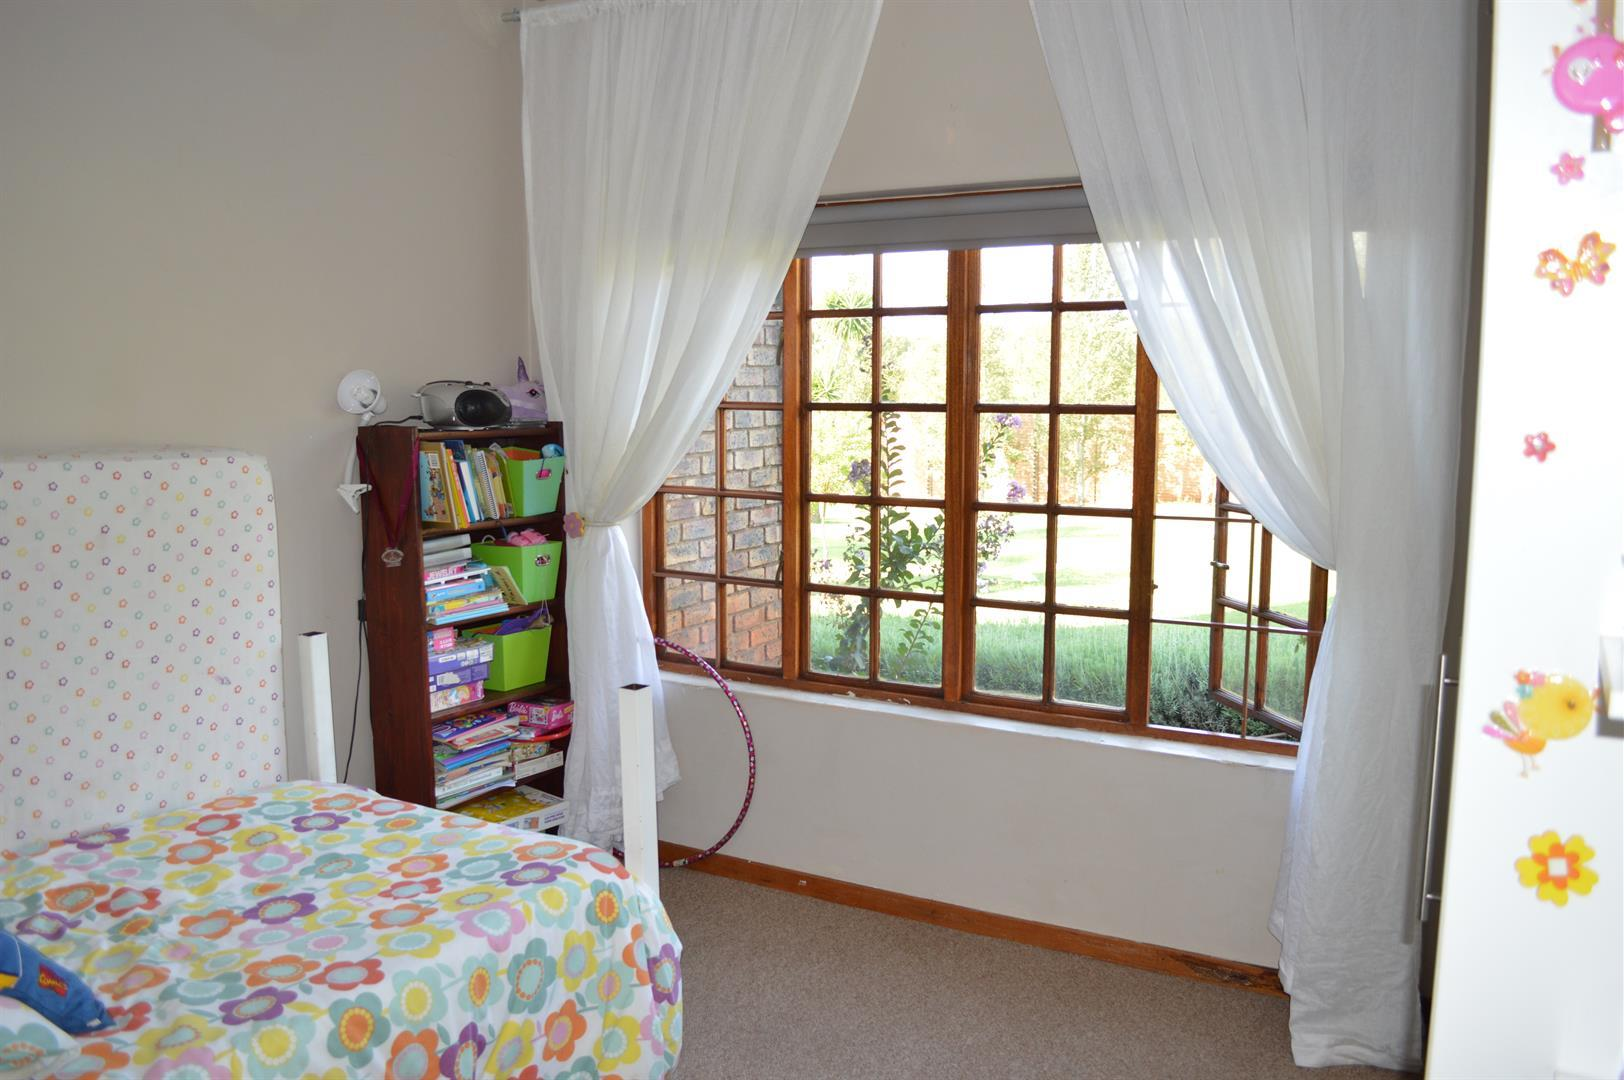 Raslouw A H property for sale. Ref No: 13442161. Picture no 14